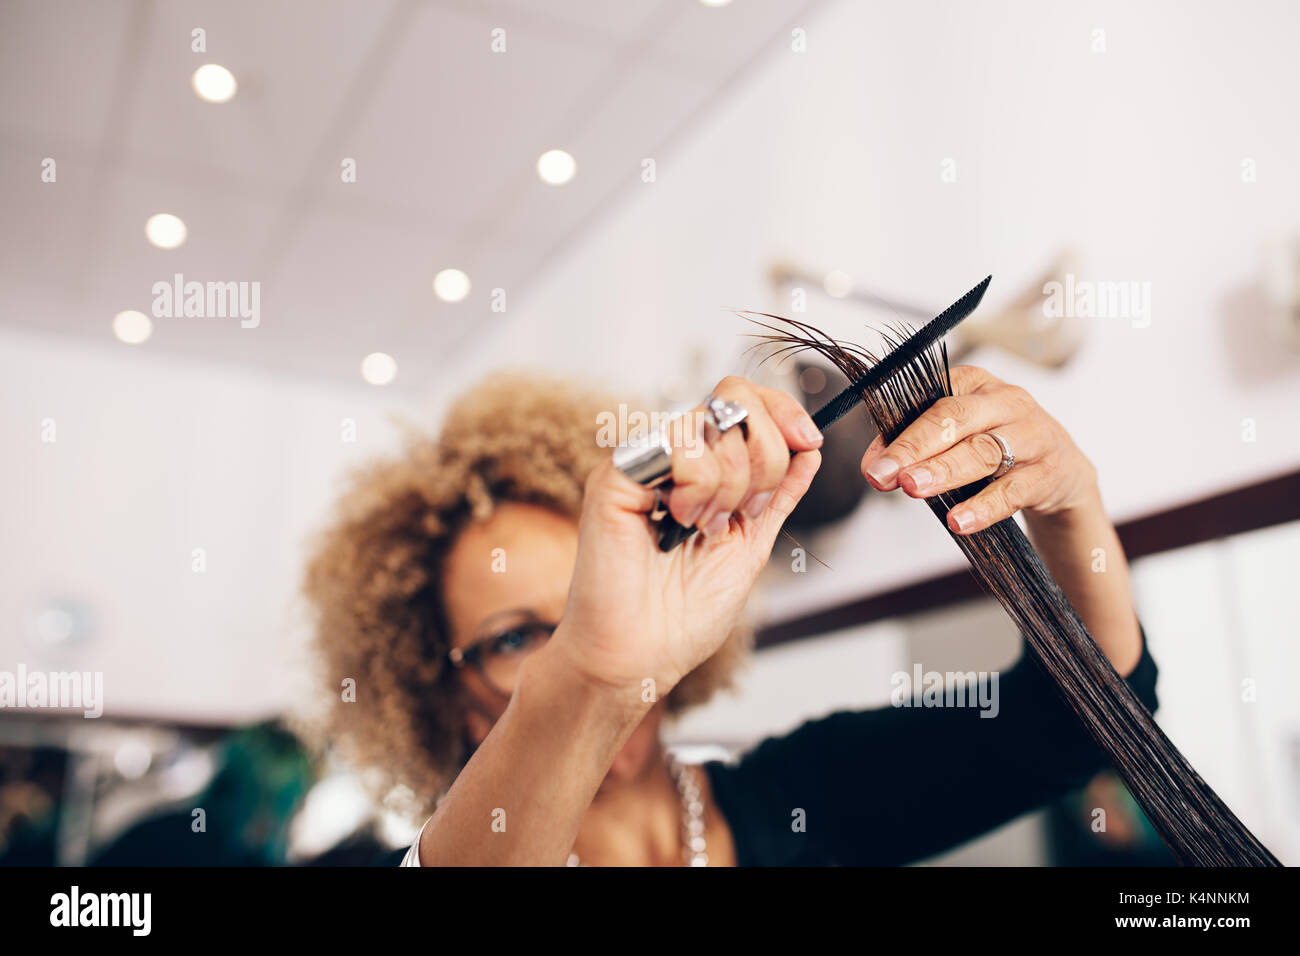 Hairdresser holding a strand of combed hair in between her fingers. Hairdresser combing hair in order to cut them in a level. - Stock Image